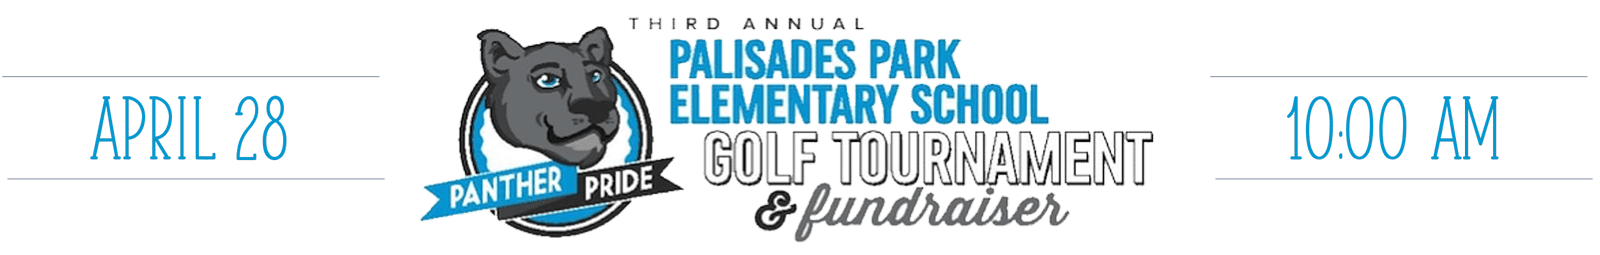 Palisades Park Elementary School Golf Tournament & Fundraiser